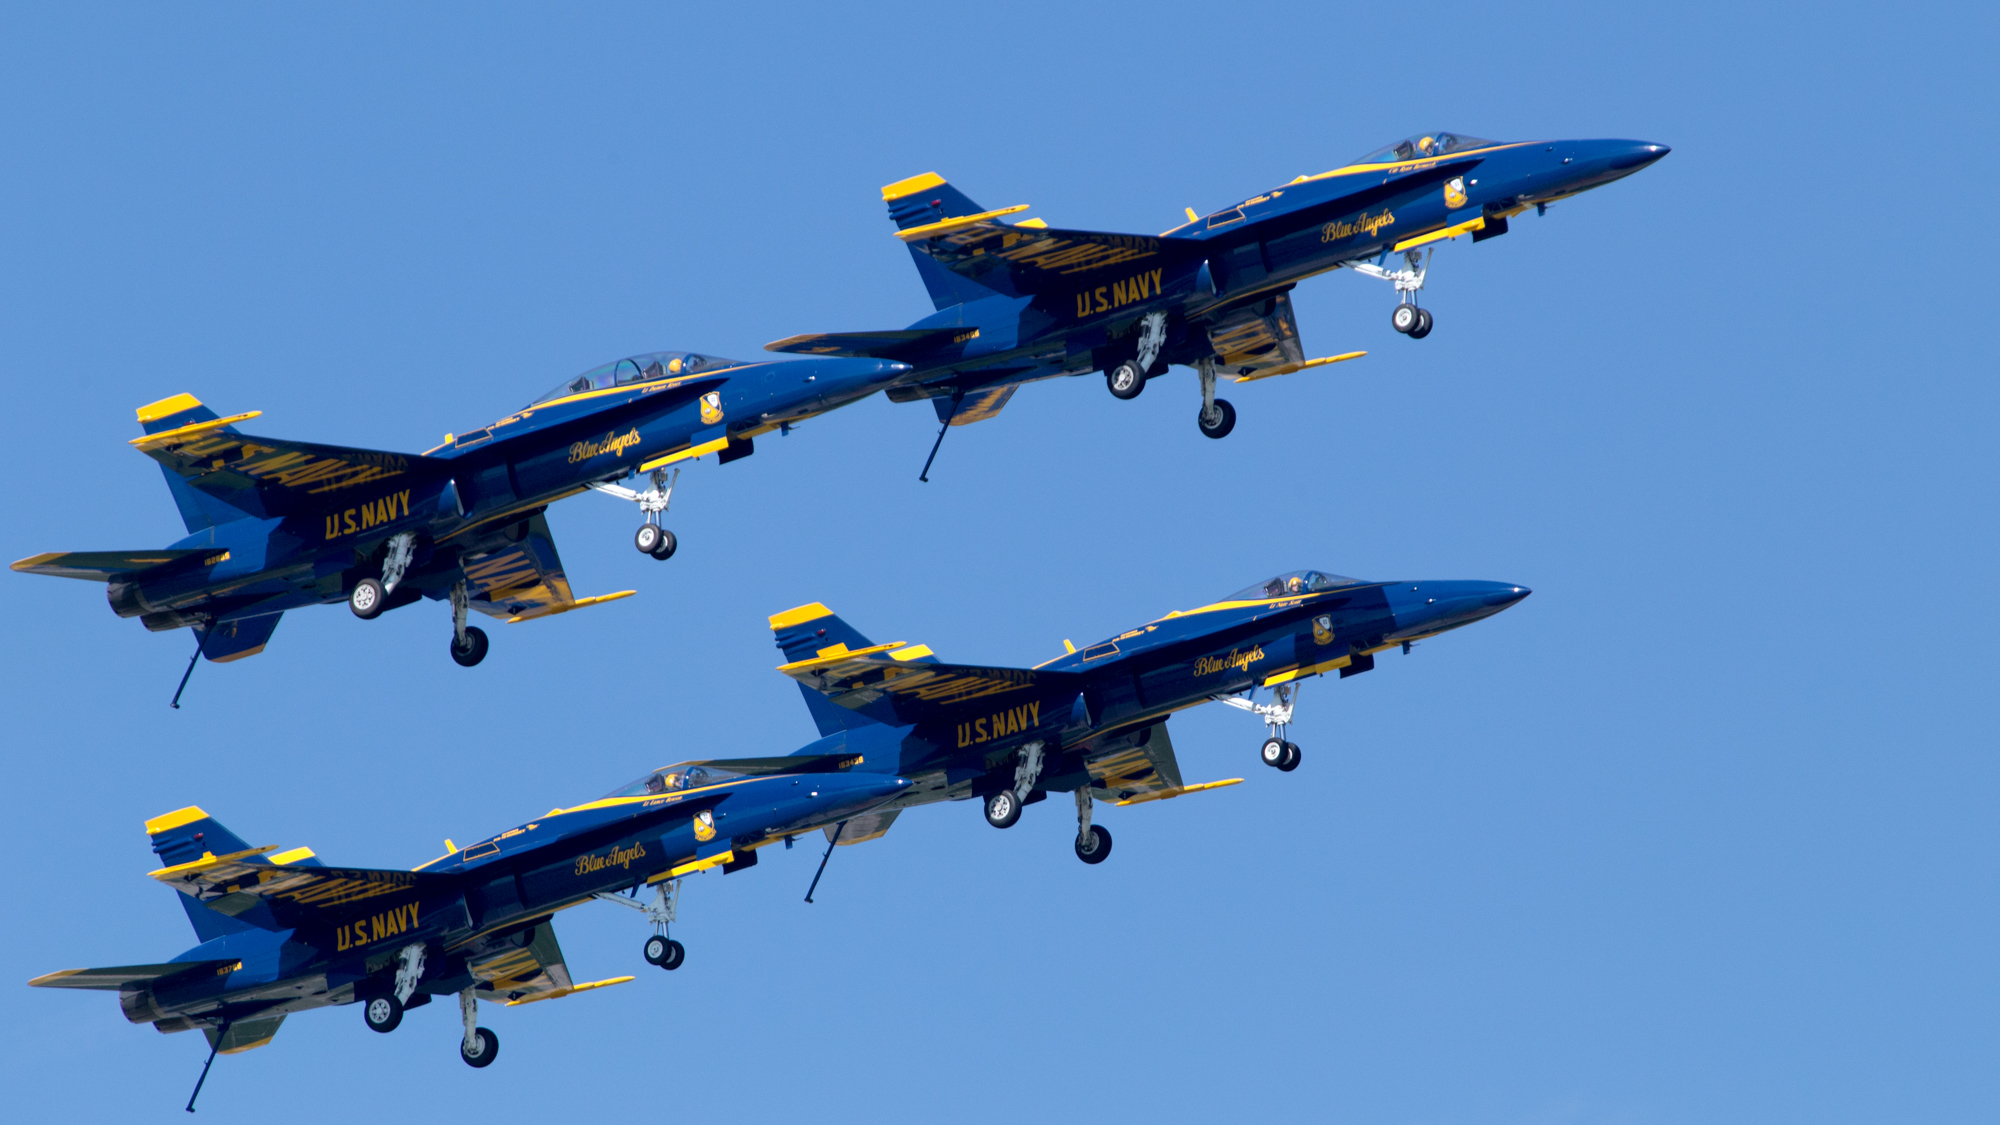 The U.S. Navy Blue Angels, seen here at EAA AirVenture in 2017, will perform at the Joint Base Andrews Air Show. Photo by Jim Moore.